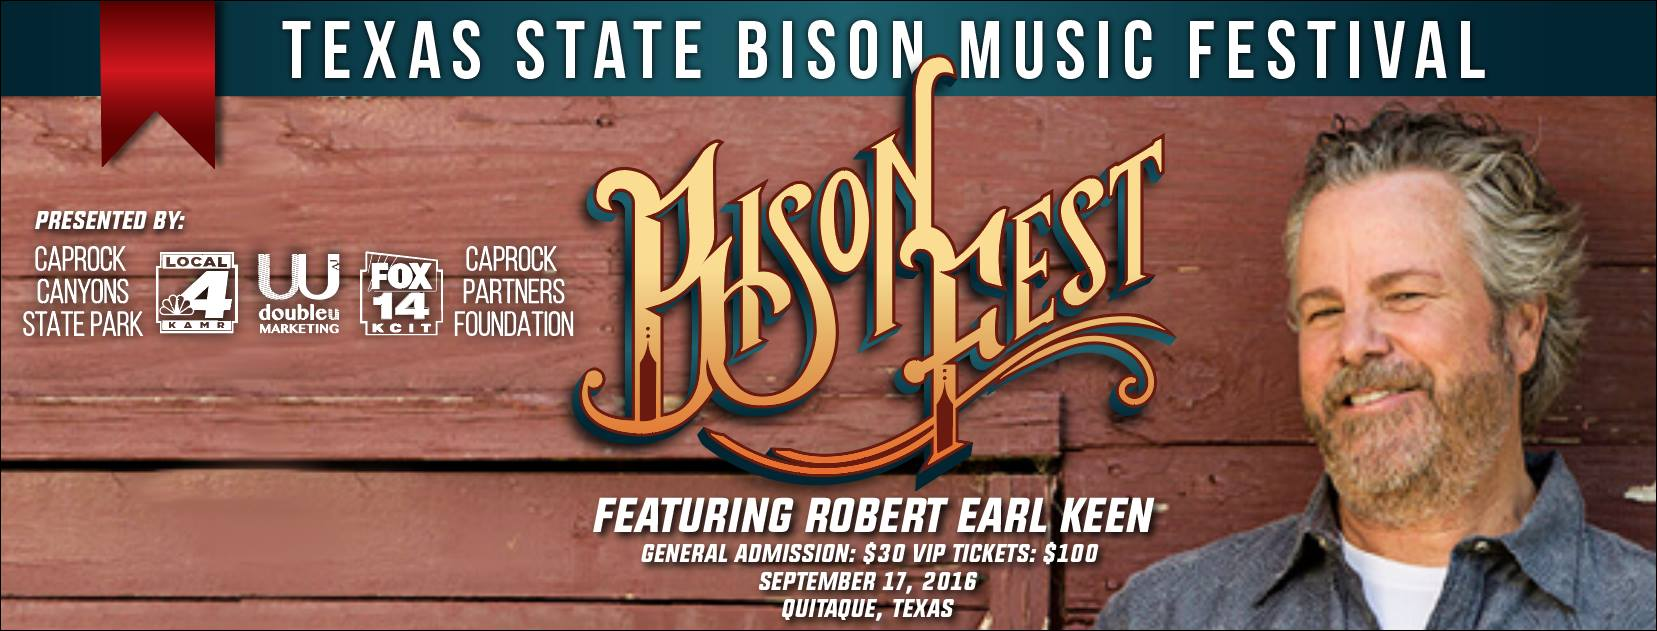 Texas State Bison Music Festival